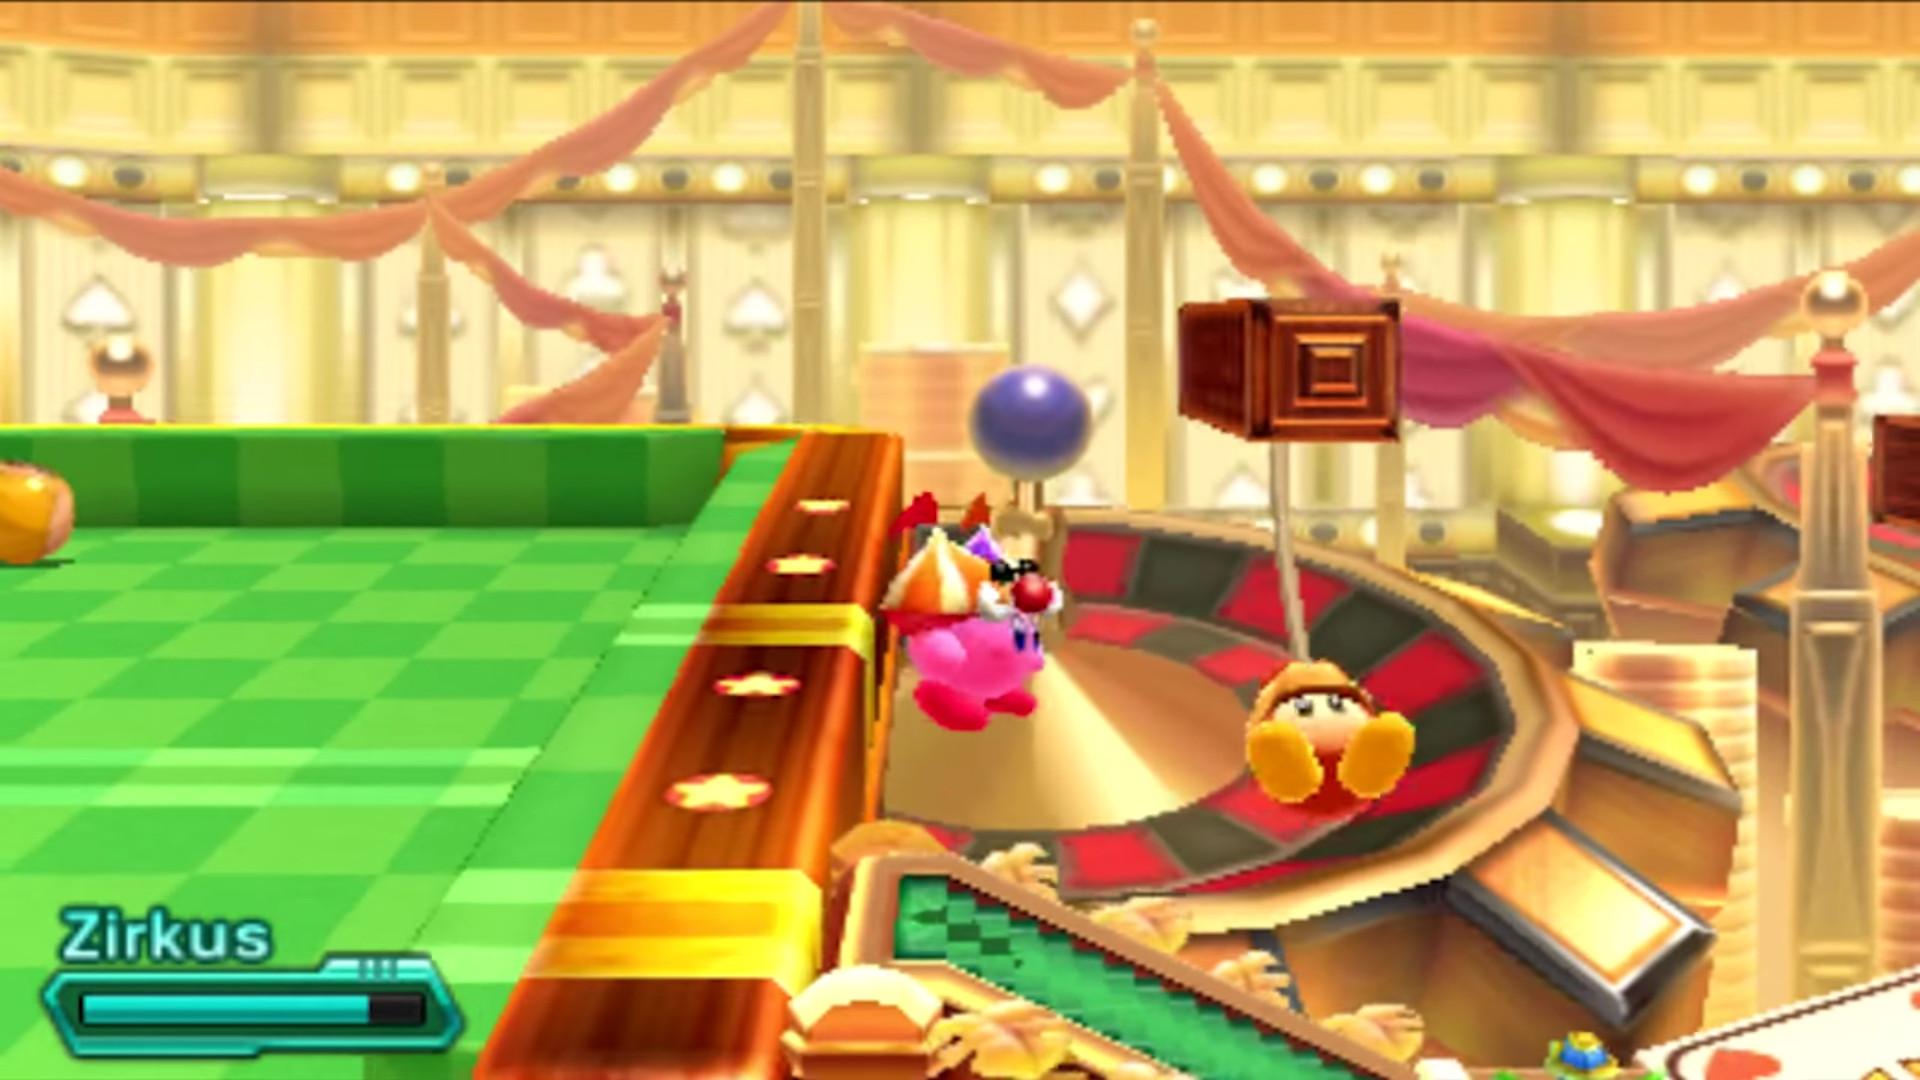 nat games kirby planet robobot 2